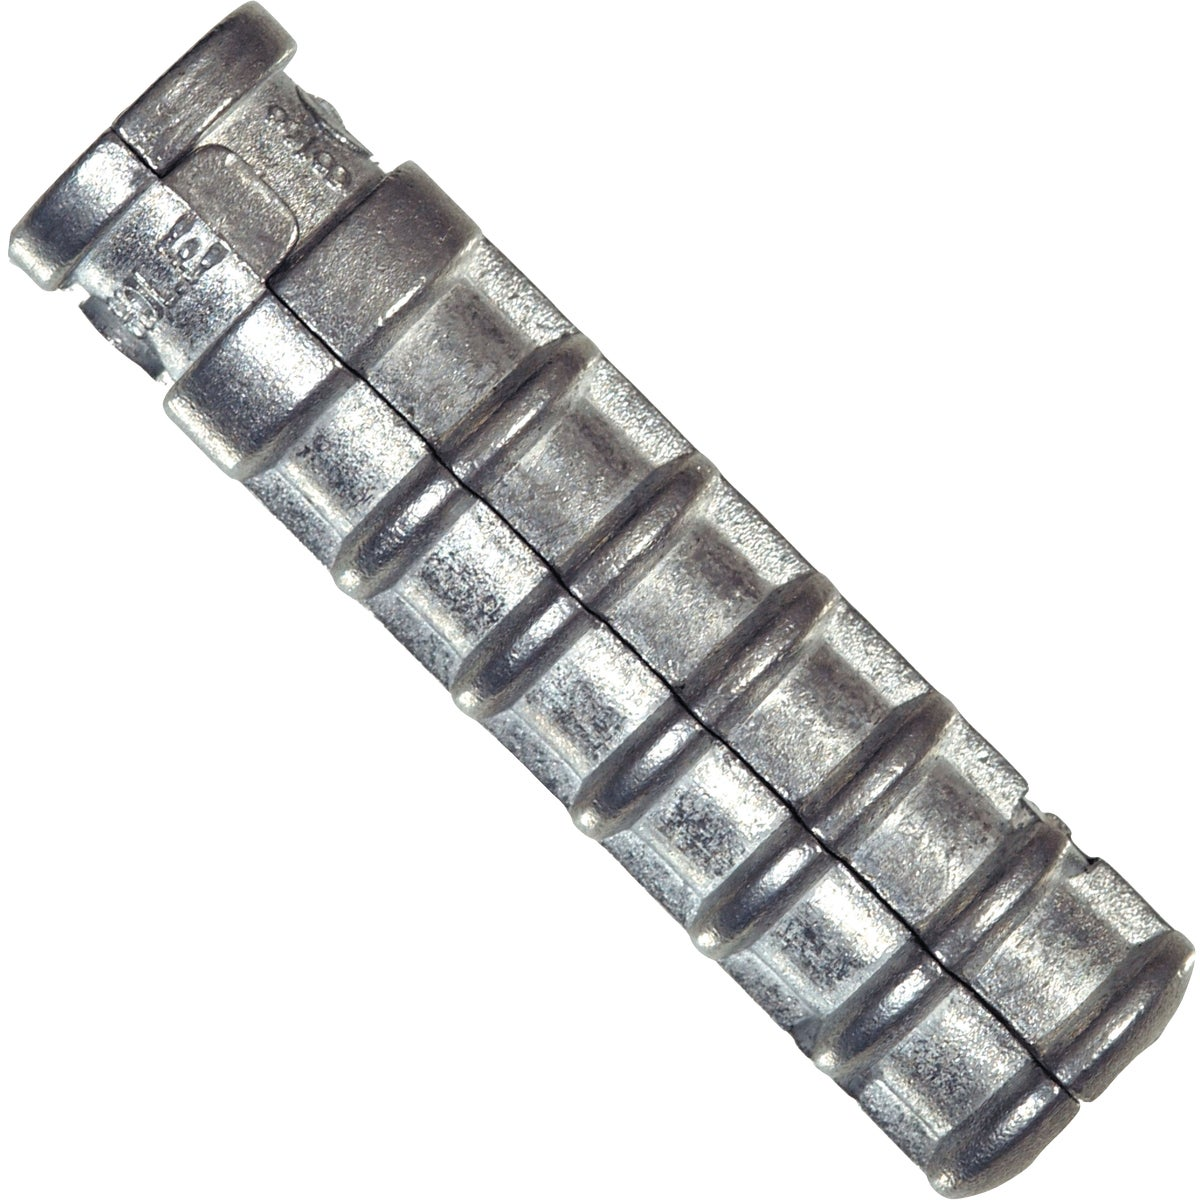 3/8L LAG SHIELD - 370192 by Hillman Fastener